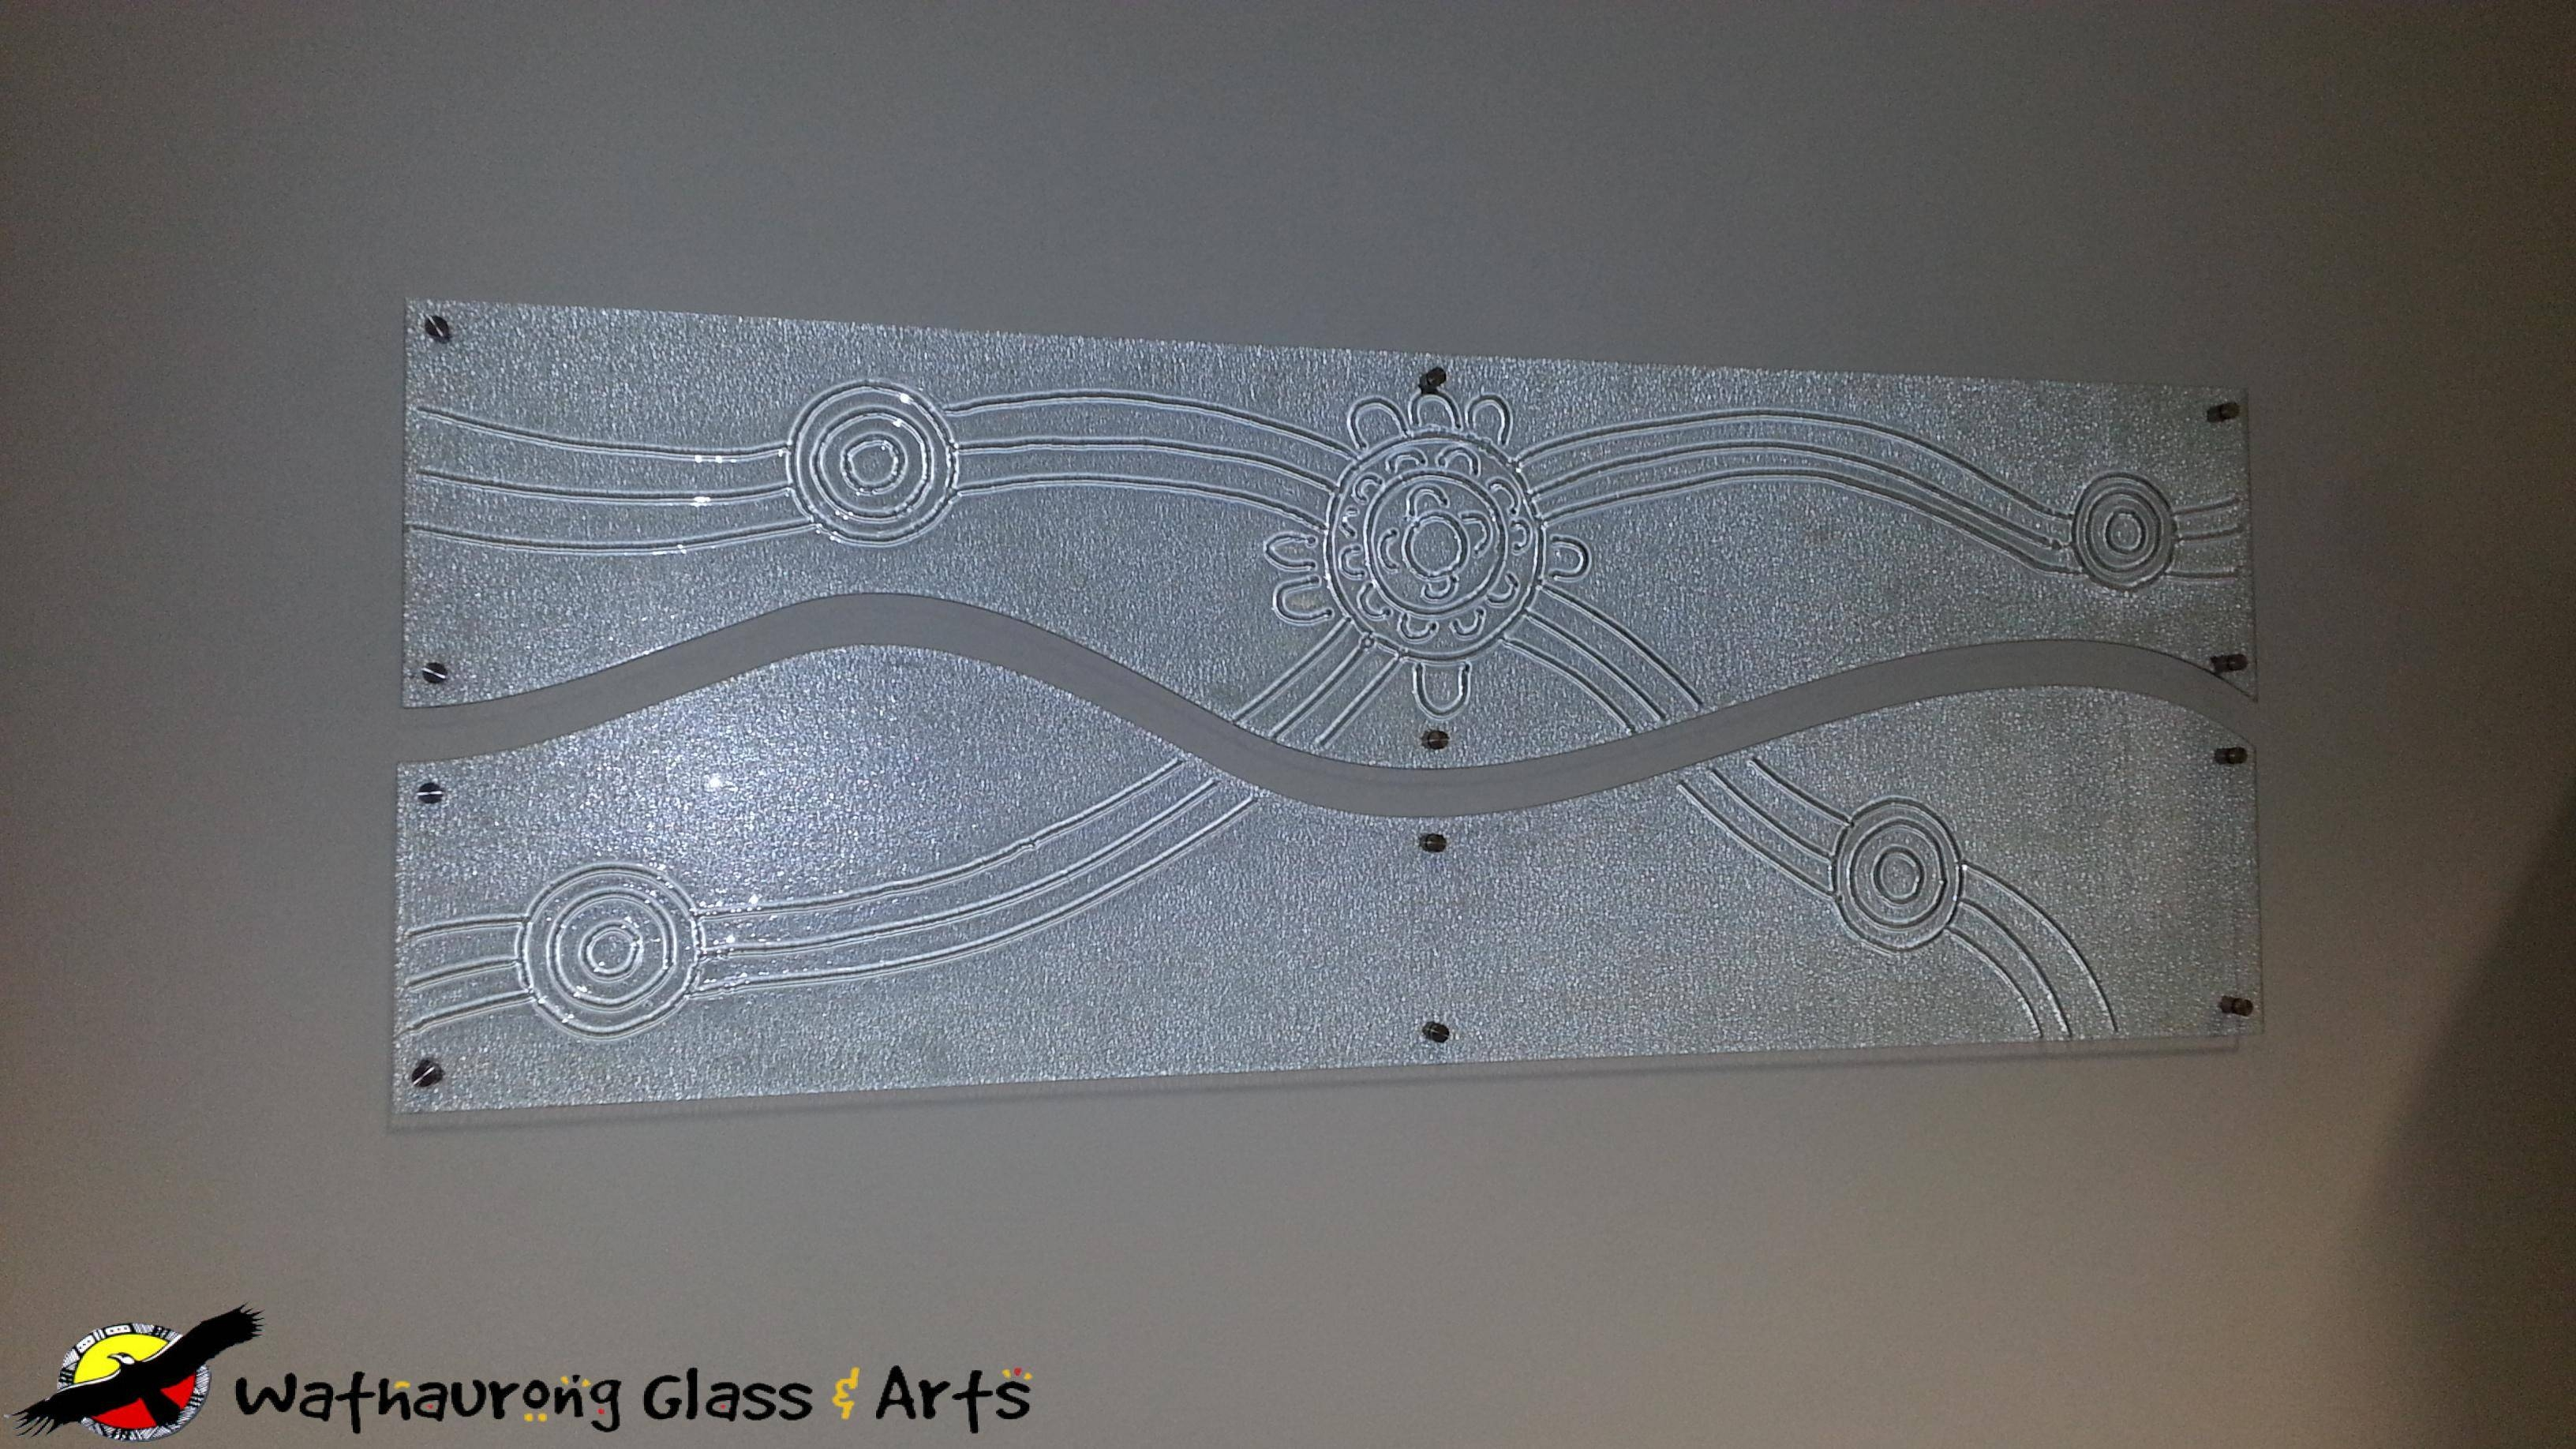 Aboriginal Glass Art Panel – Wathaurong Glass Within 2018 Glass Wall Art Panels (View 9 of 20)